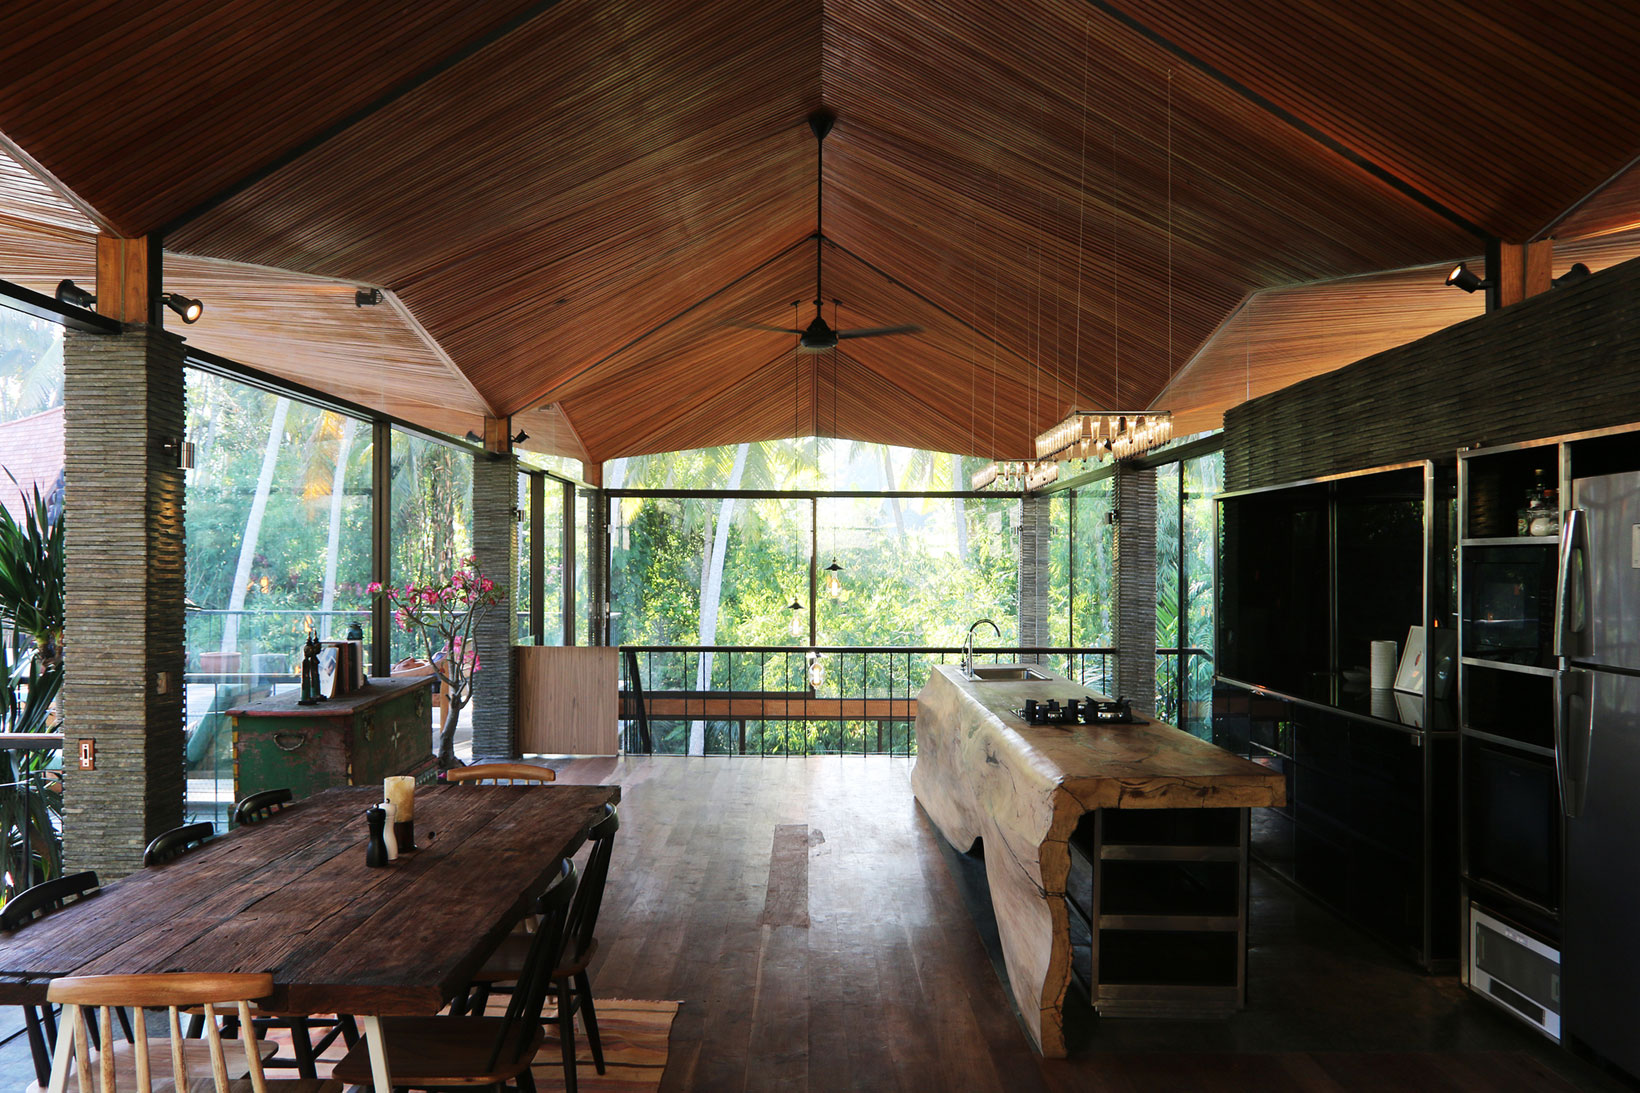 Alexis dornier designs a spectacular private home in bali for Bali style homes to build